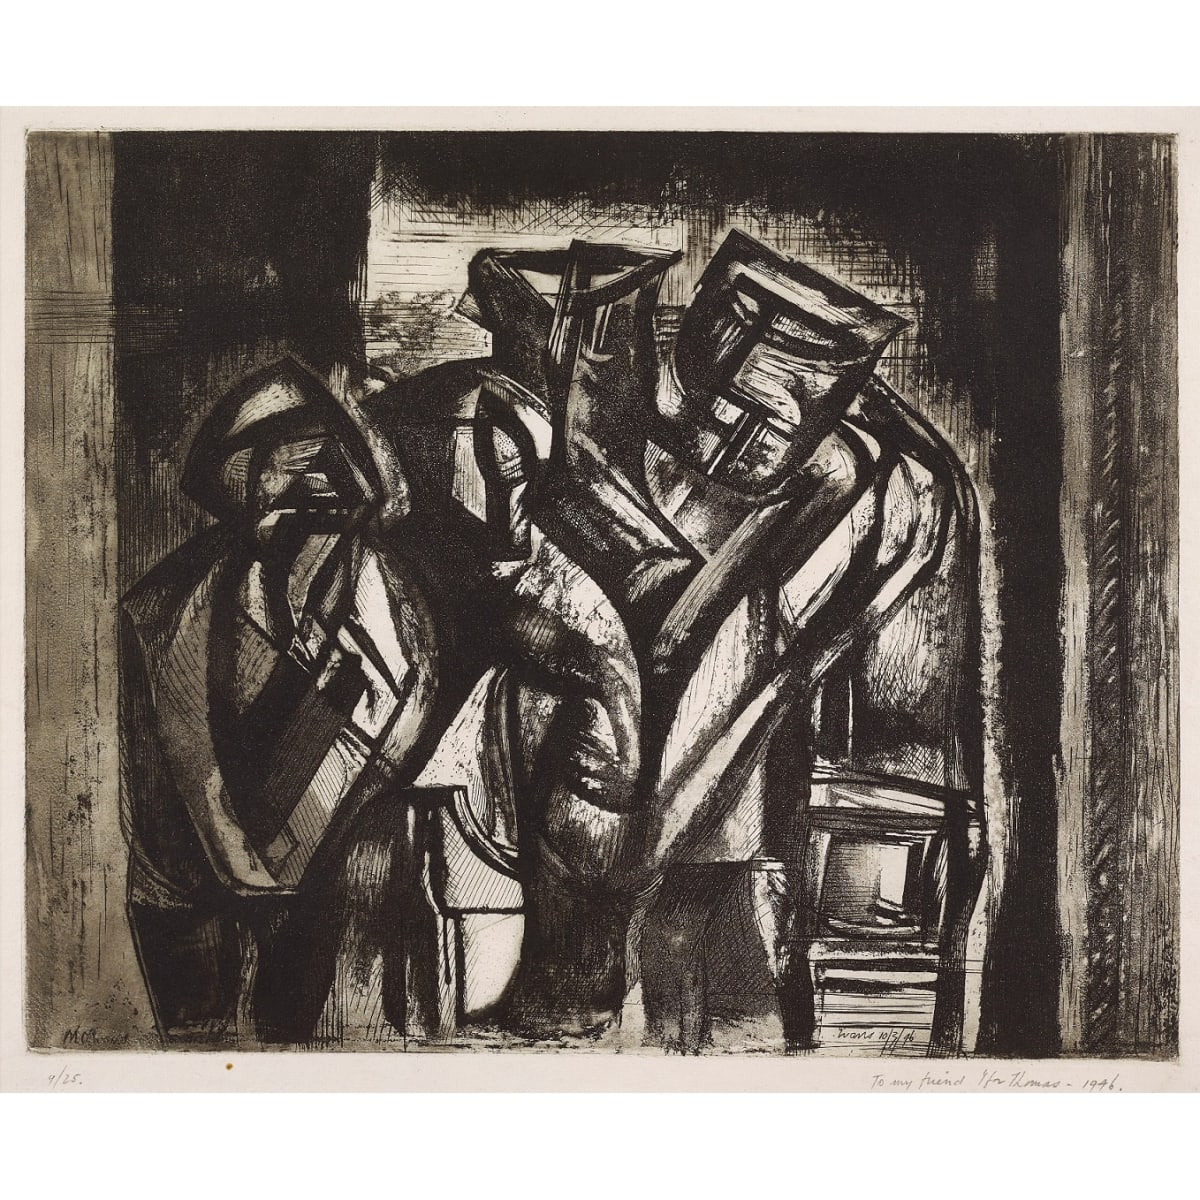 Merlyn Oliver Evans The Miners, 1946 signed and dated 10/3/46 in plate; numbered 9/25 and inscribed 'to my friend Ifor Thomas - 1946' in pencil to margin etching 12 1/2 x 15 3/4 inches